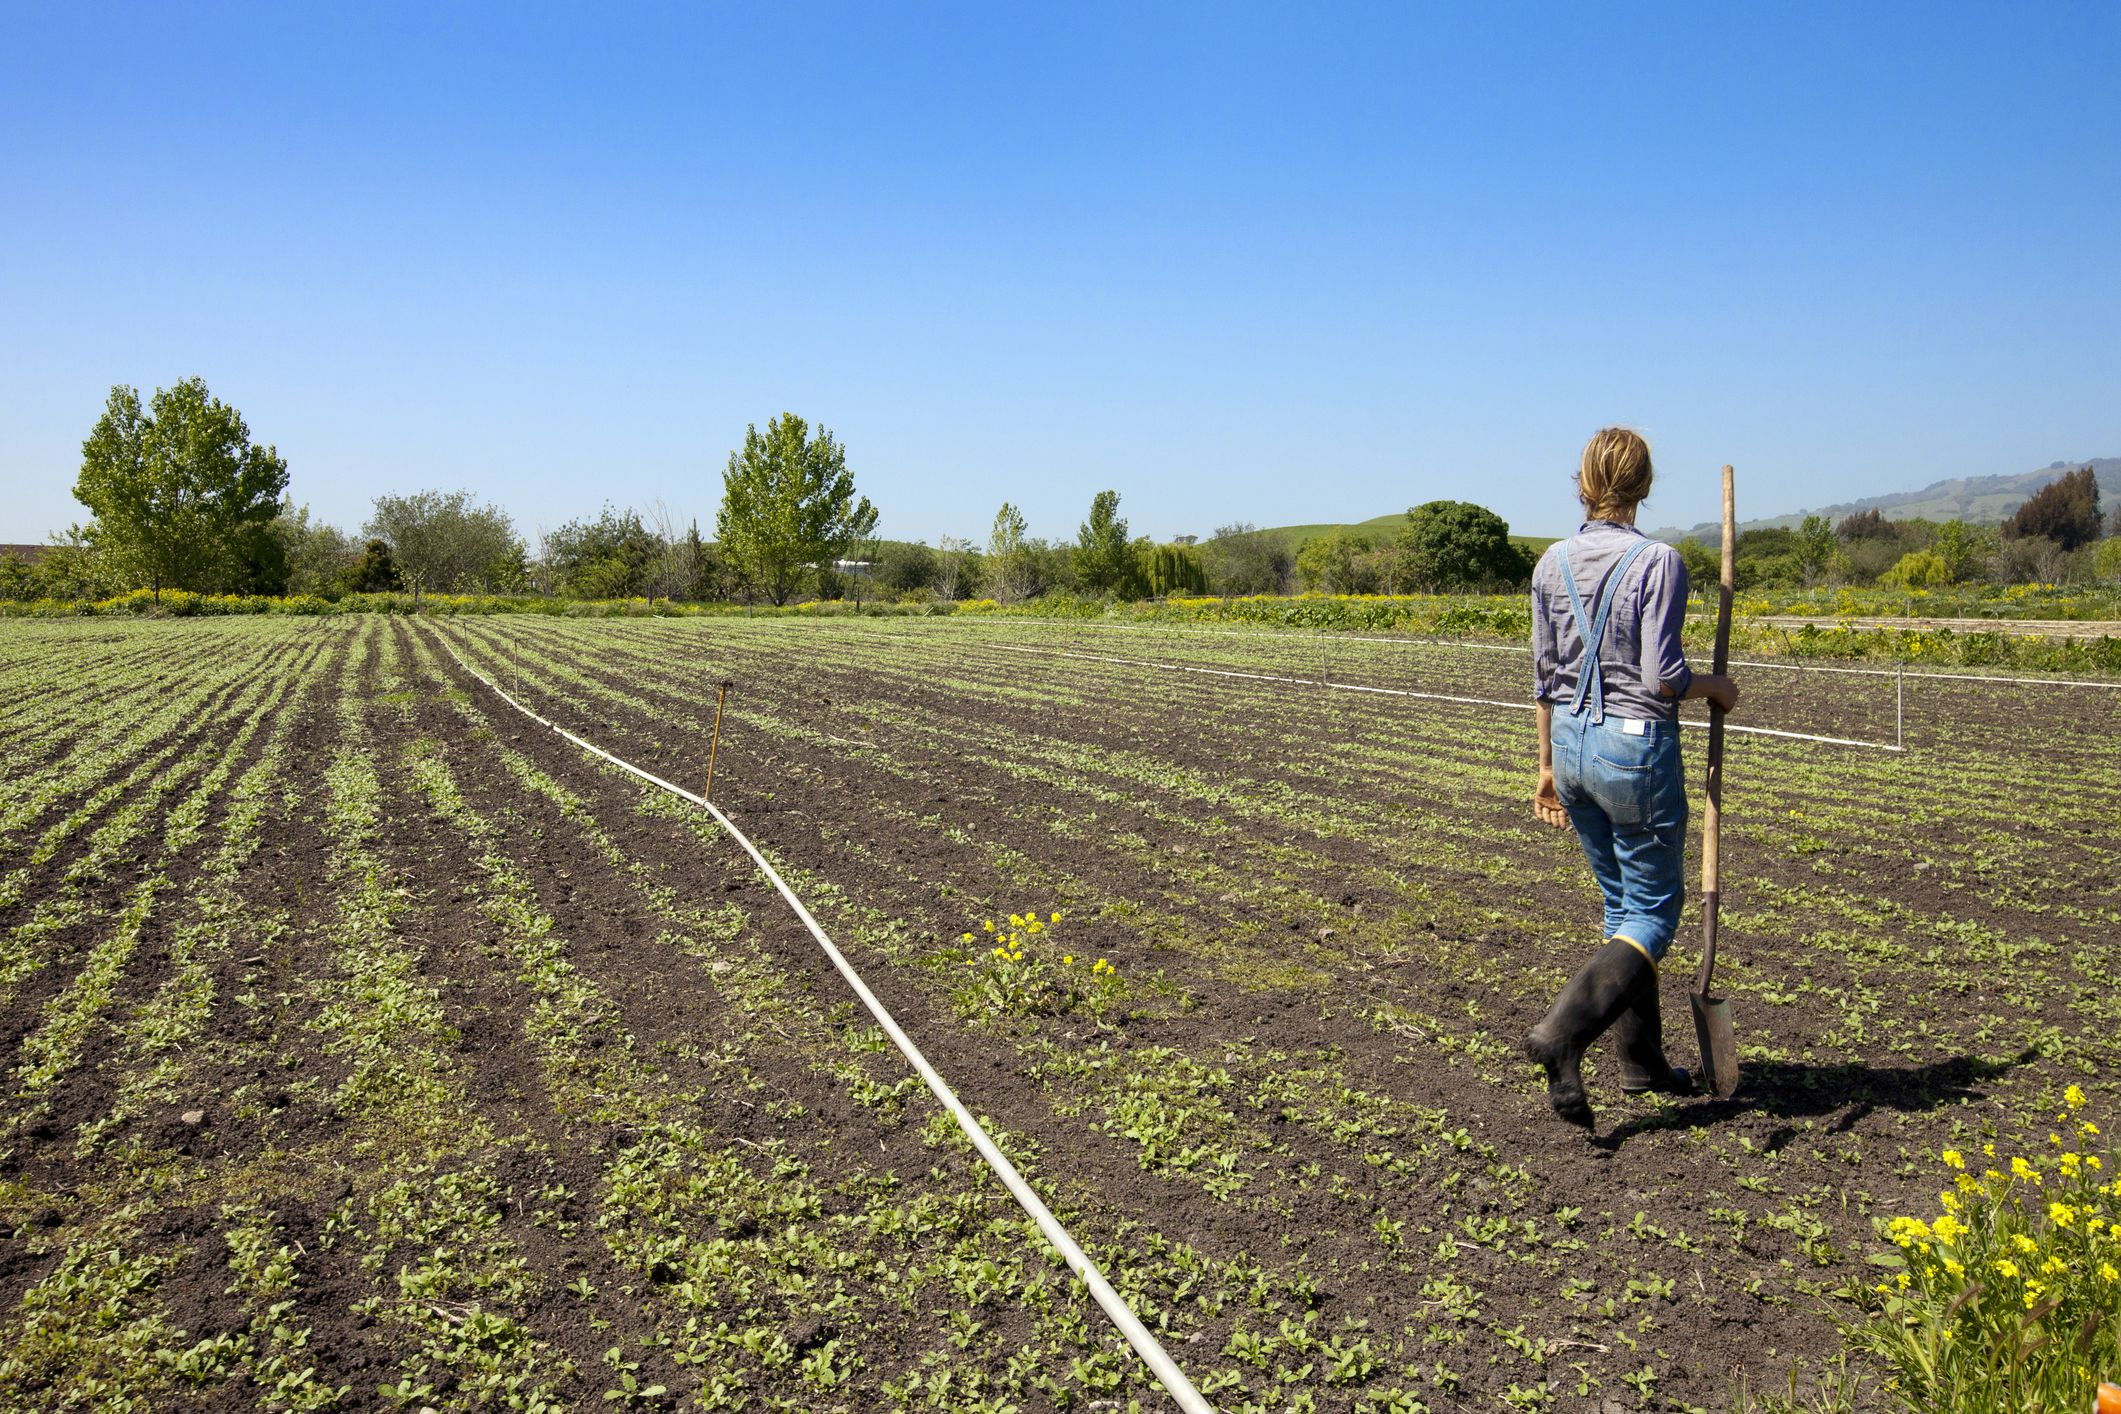 Specialty Farming And Alternative Crops For Small Farms